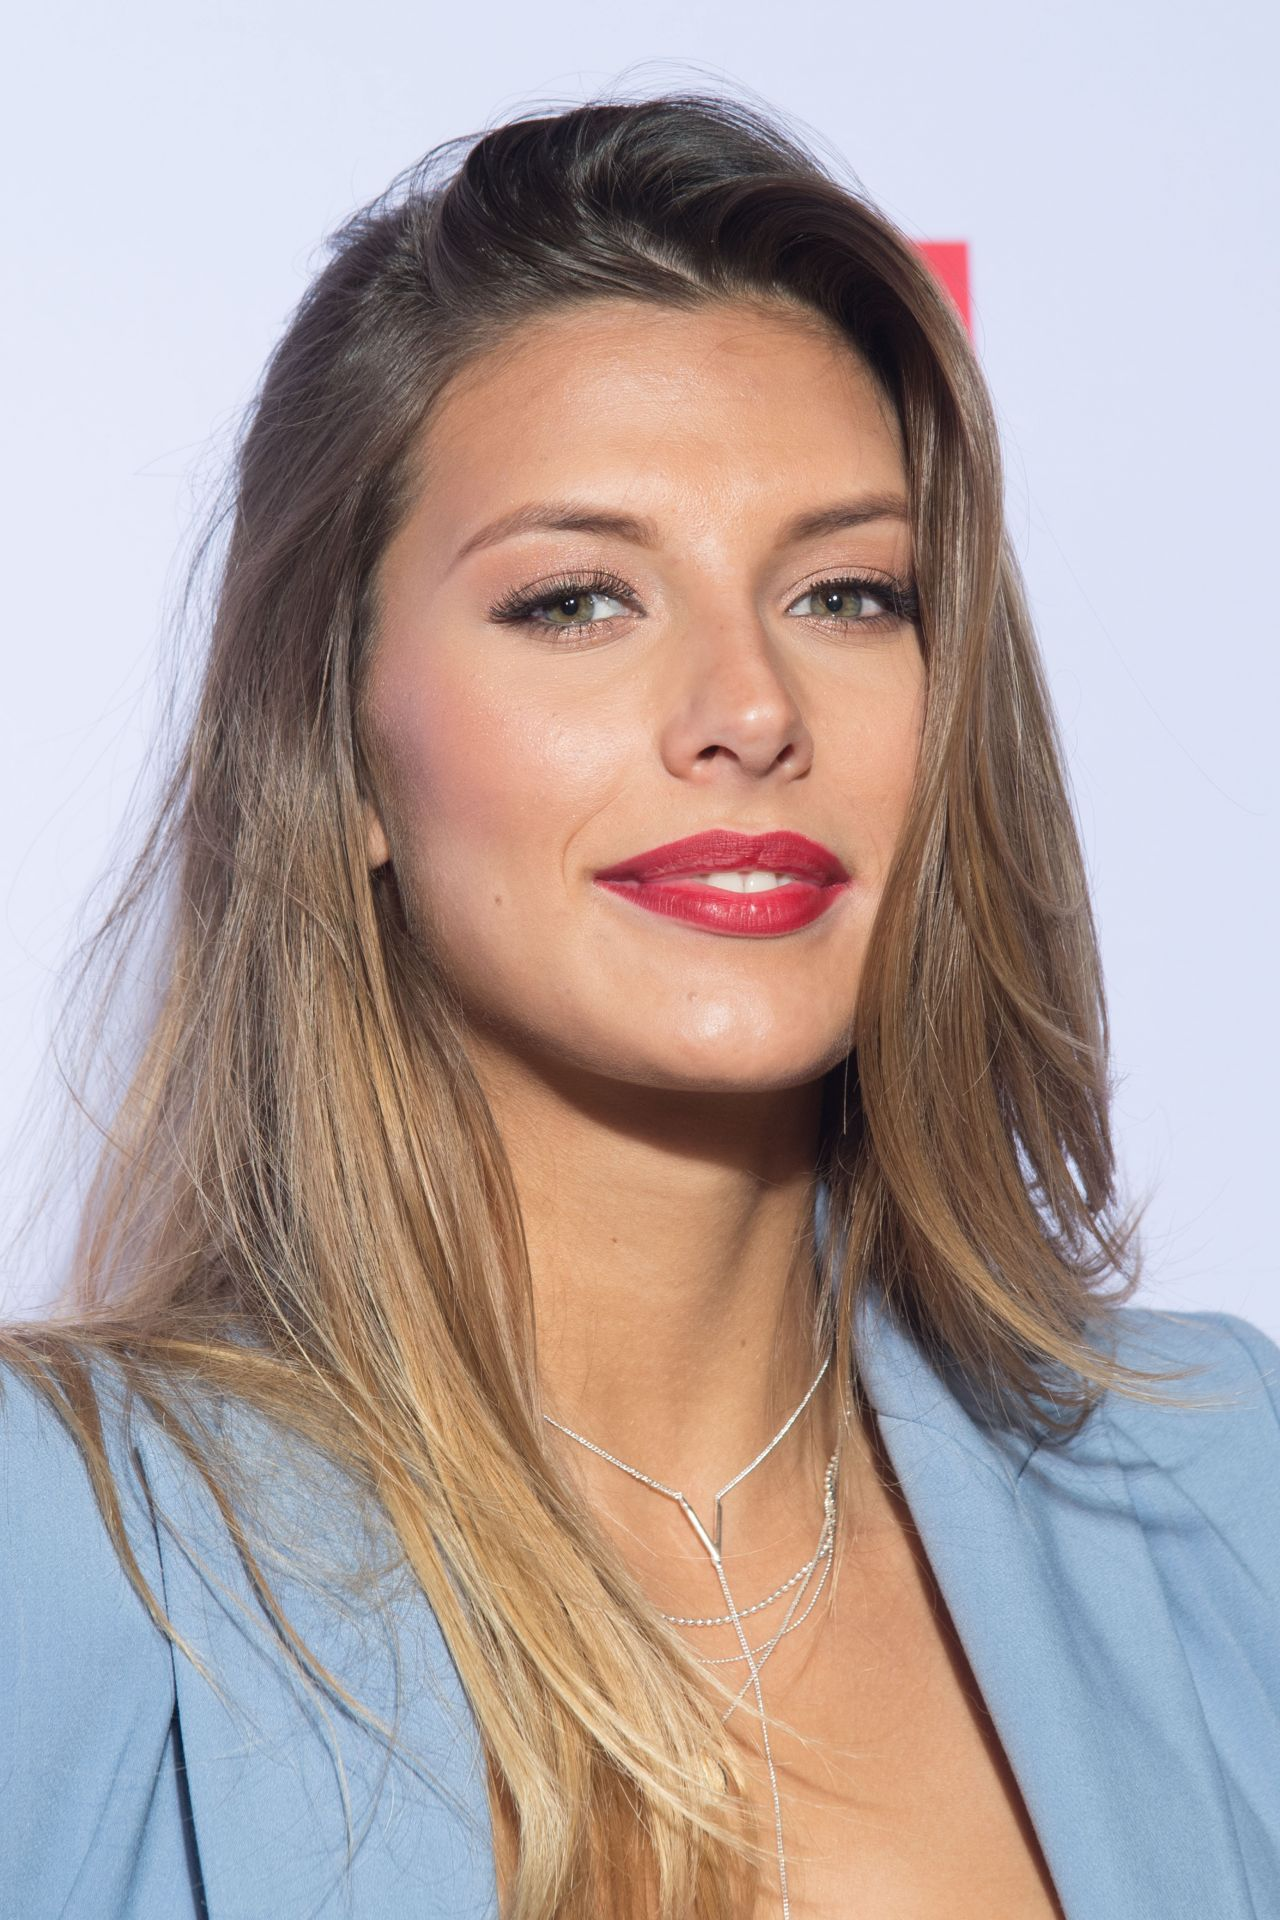 Camille Cerf Amp Malika Menard Nrj Group Media Conference